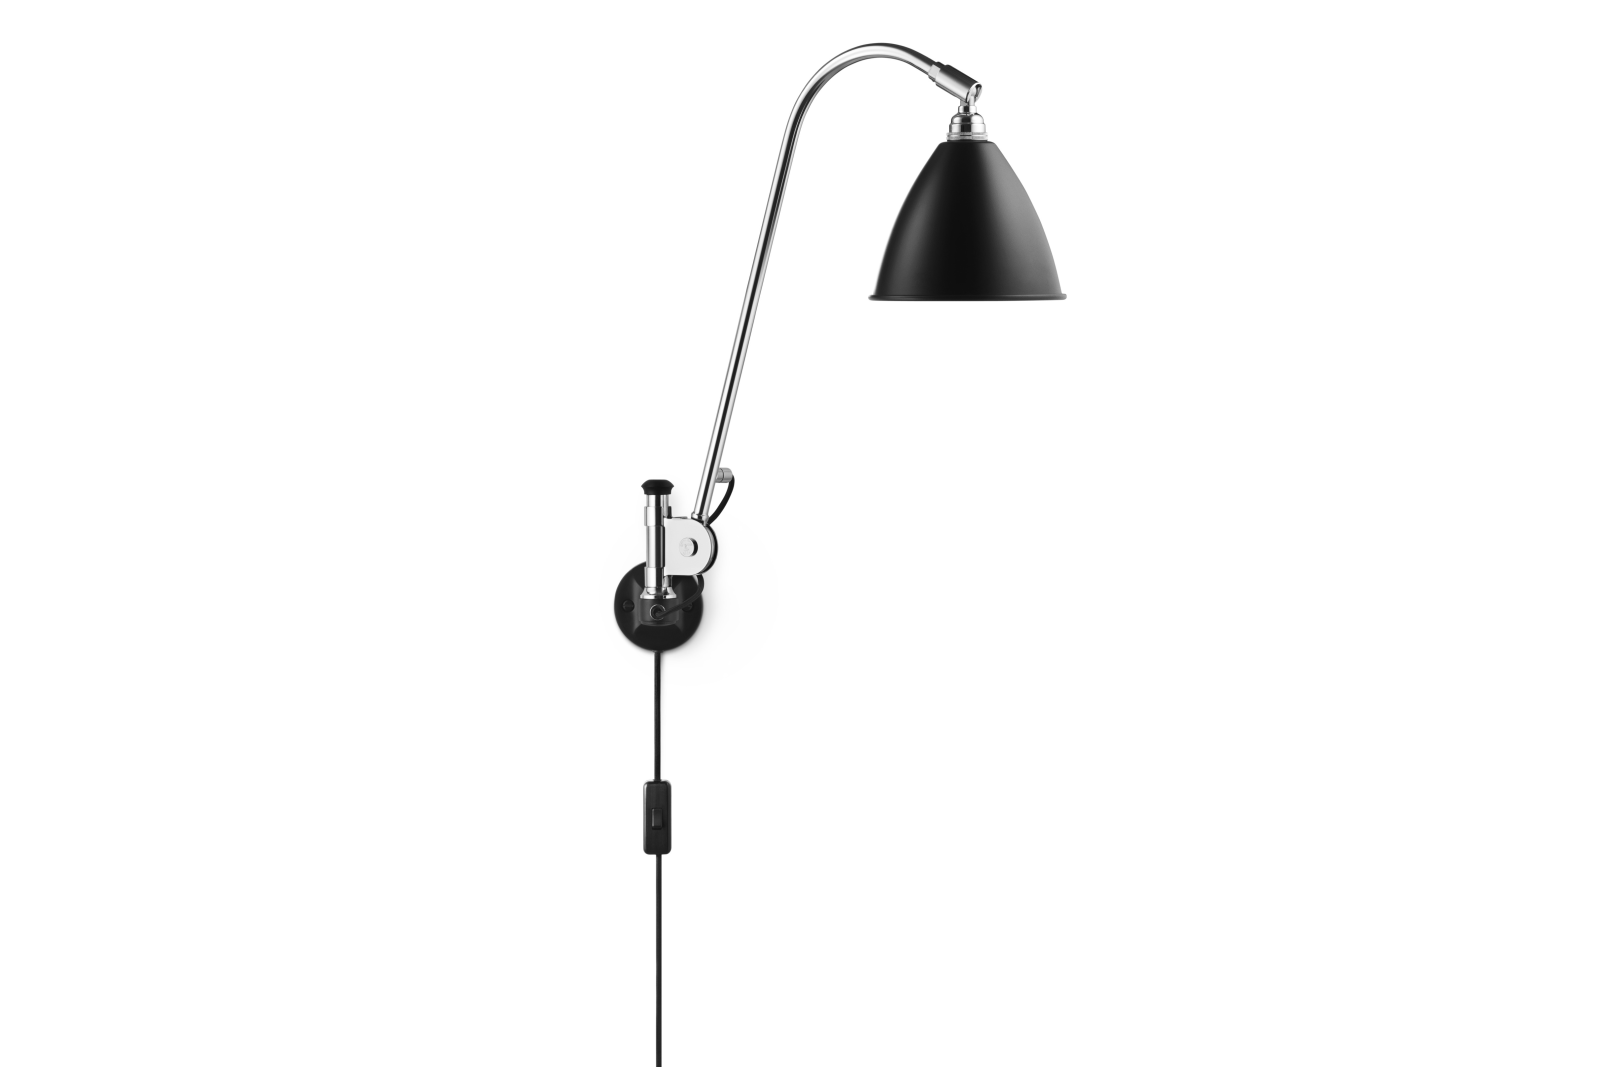 Bestlite BL6 Wall Light Black / Chrome